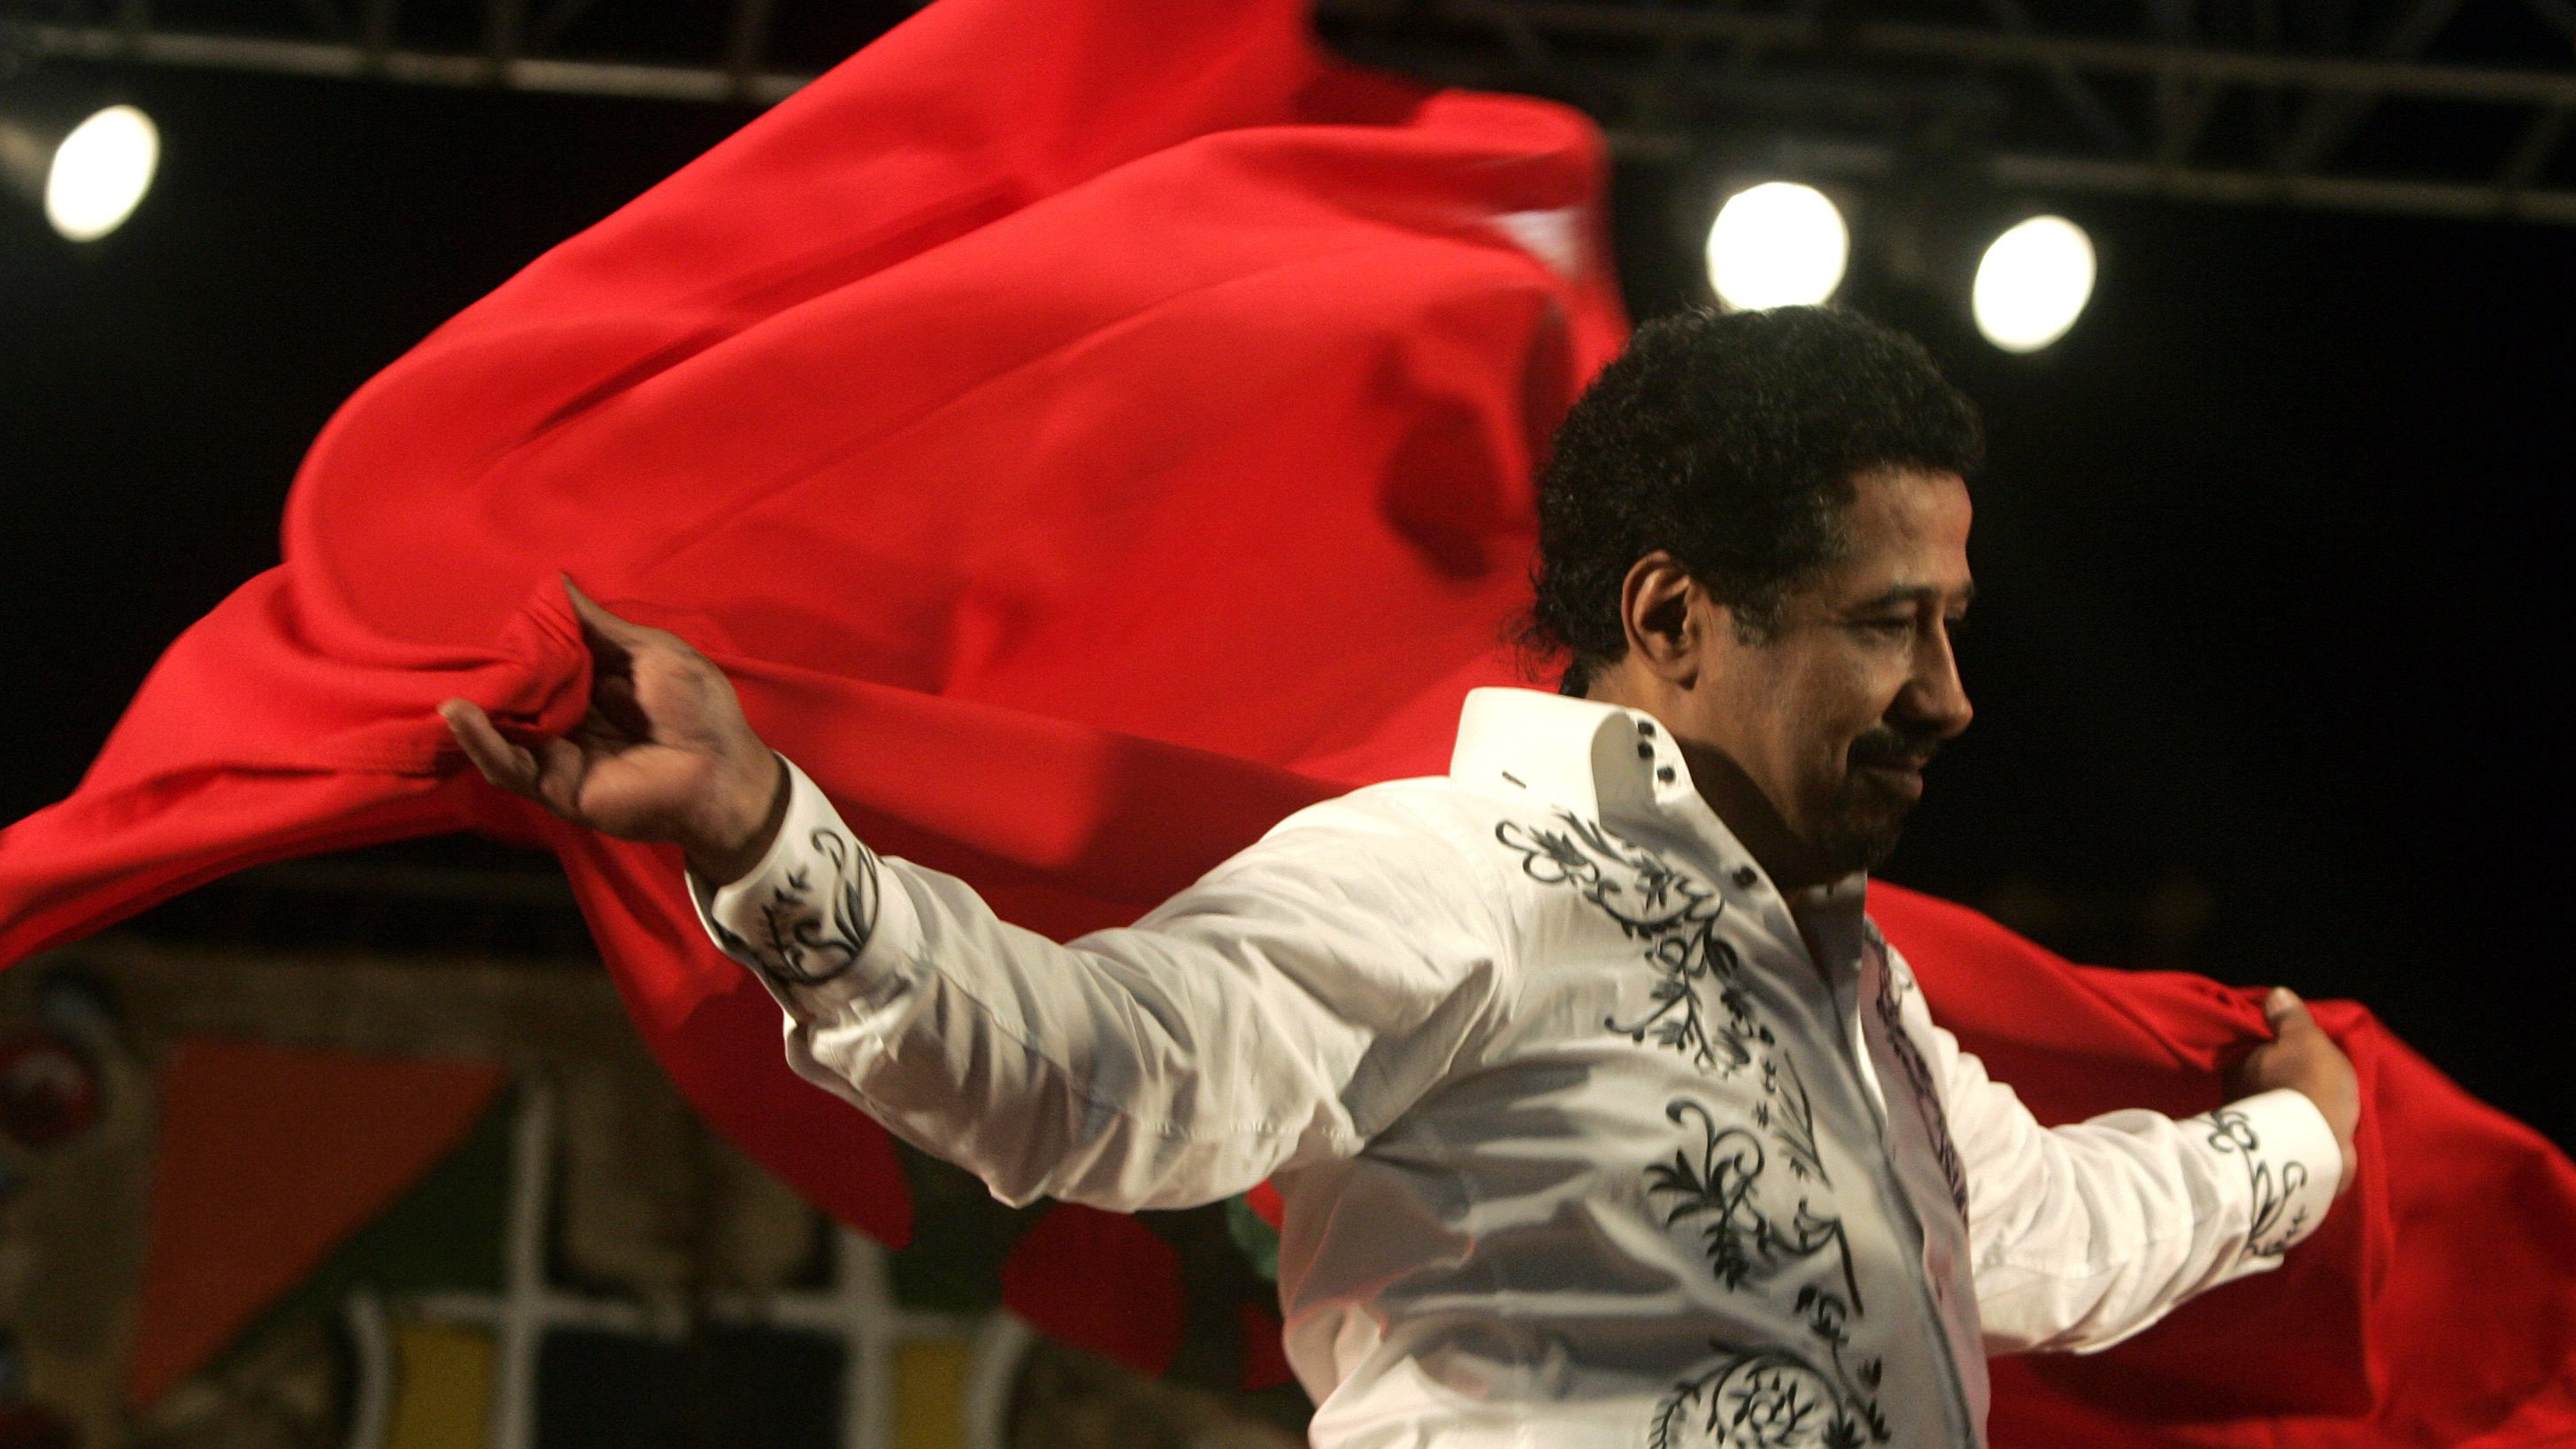 Algerian singer Cheb Khaled (Khalid) covers himself with a Moroccan flag during his concert in Essaouira